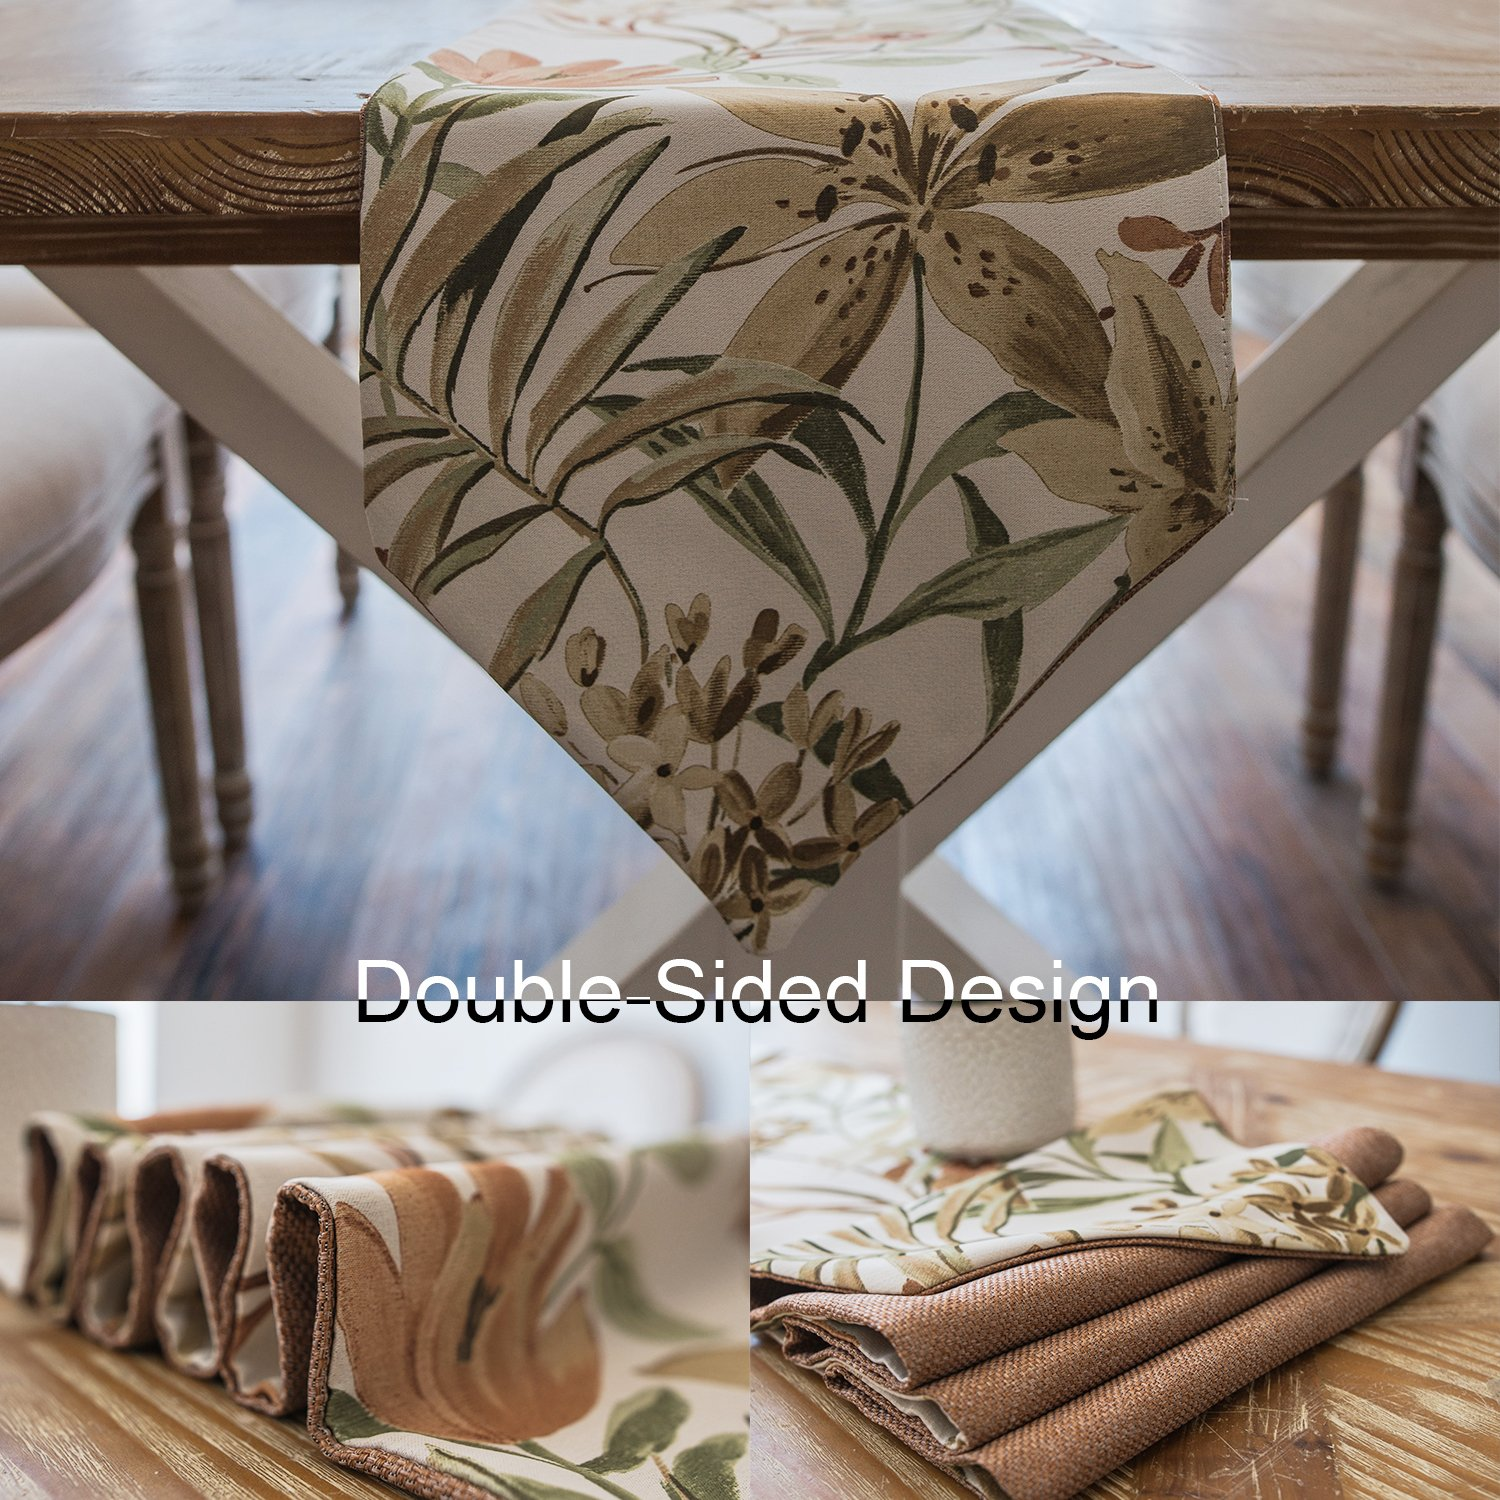 Foulola Folding Table Runner Rug,Burlap Linen,12X104inch, Double Sided Design (Pure Brown and Chinese Painting Style),For Dining, Party, Wedding, Coffee, Home Decoration